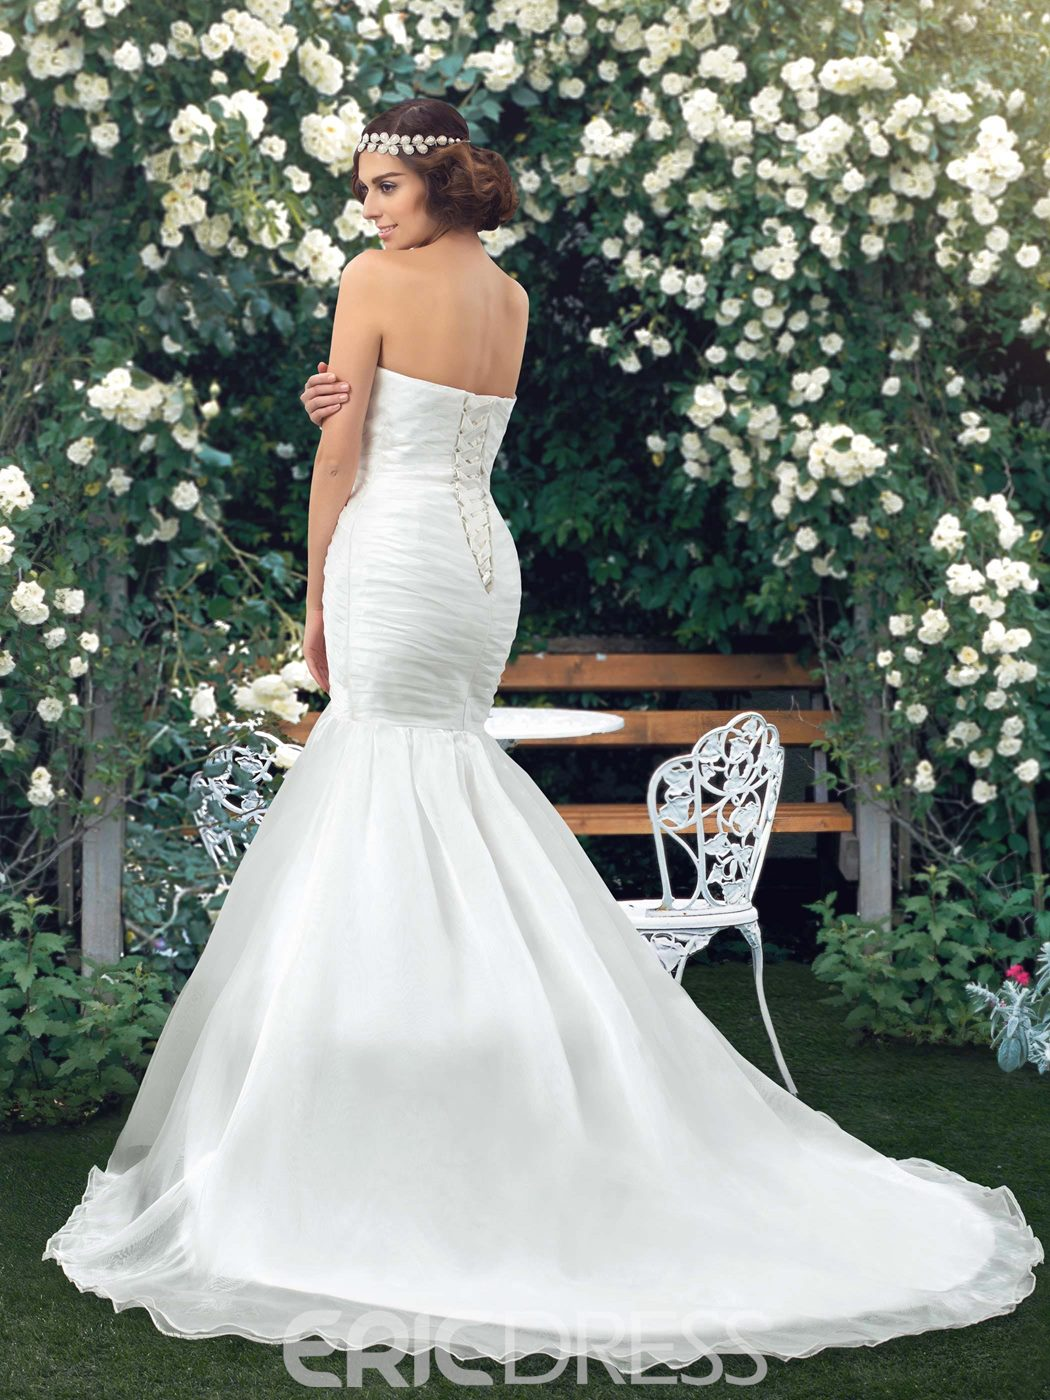 Classy Strapless Lace-Up Ruched Mermaid Wedding Dress